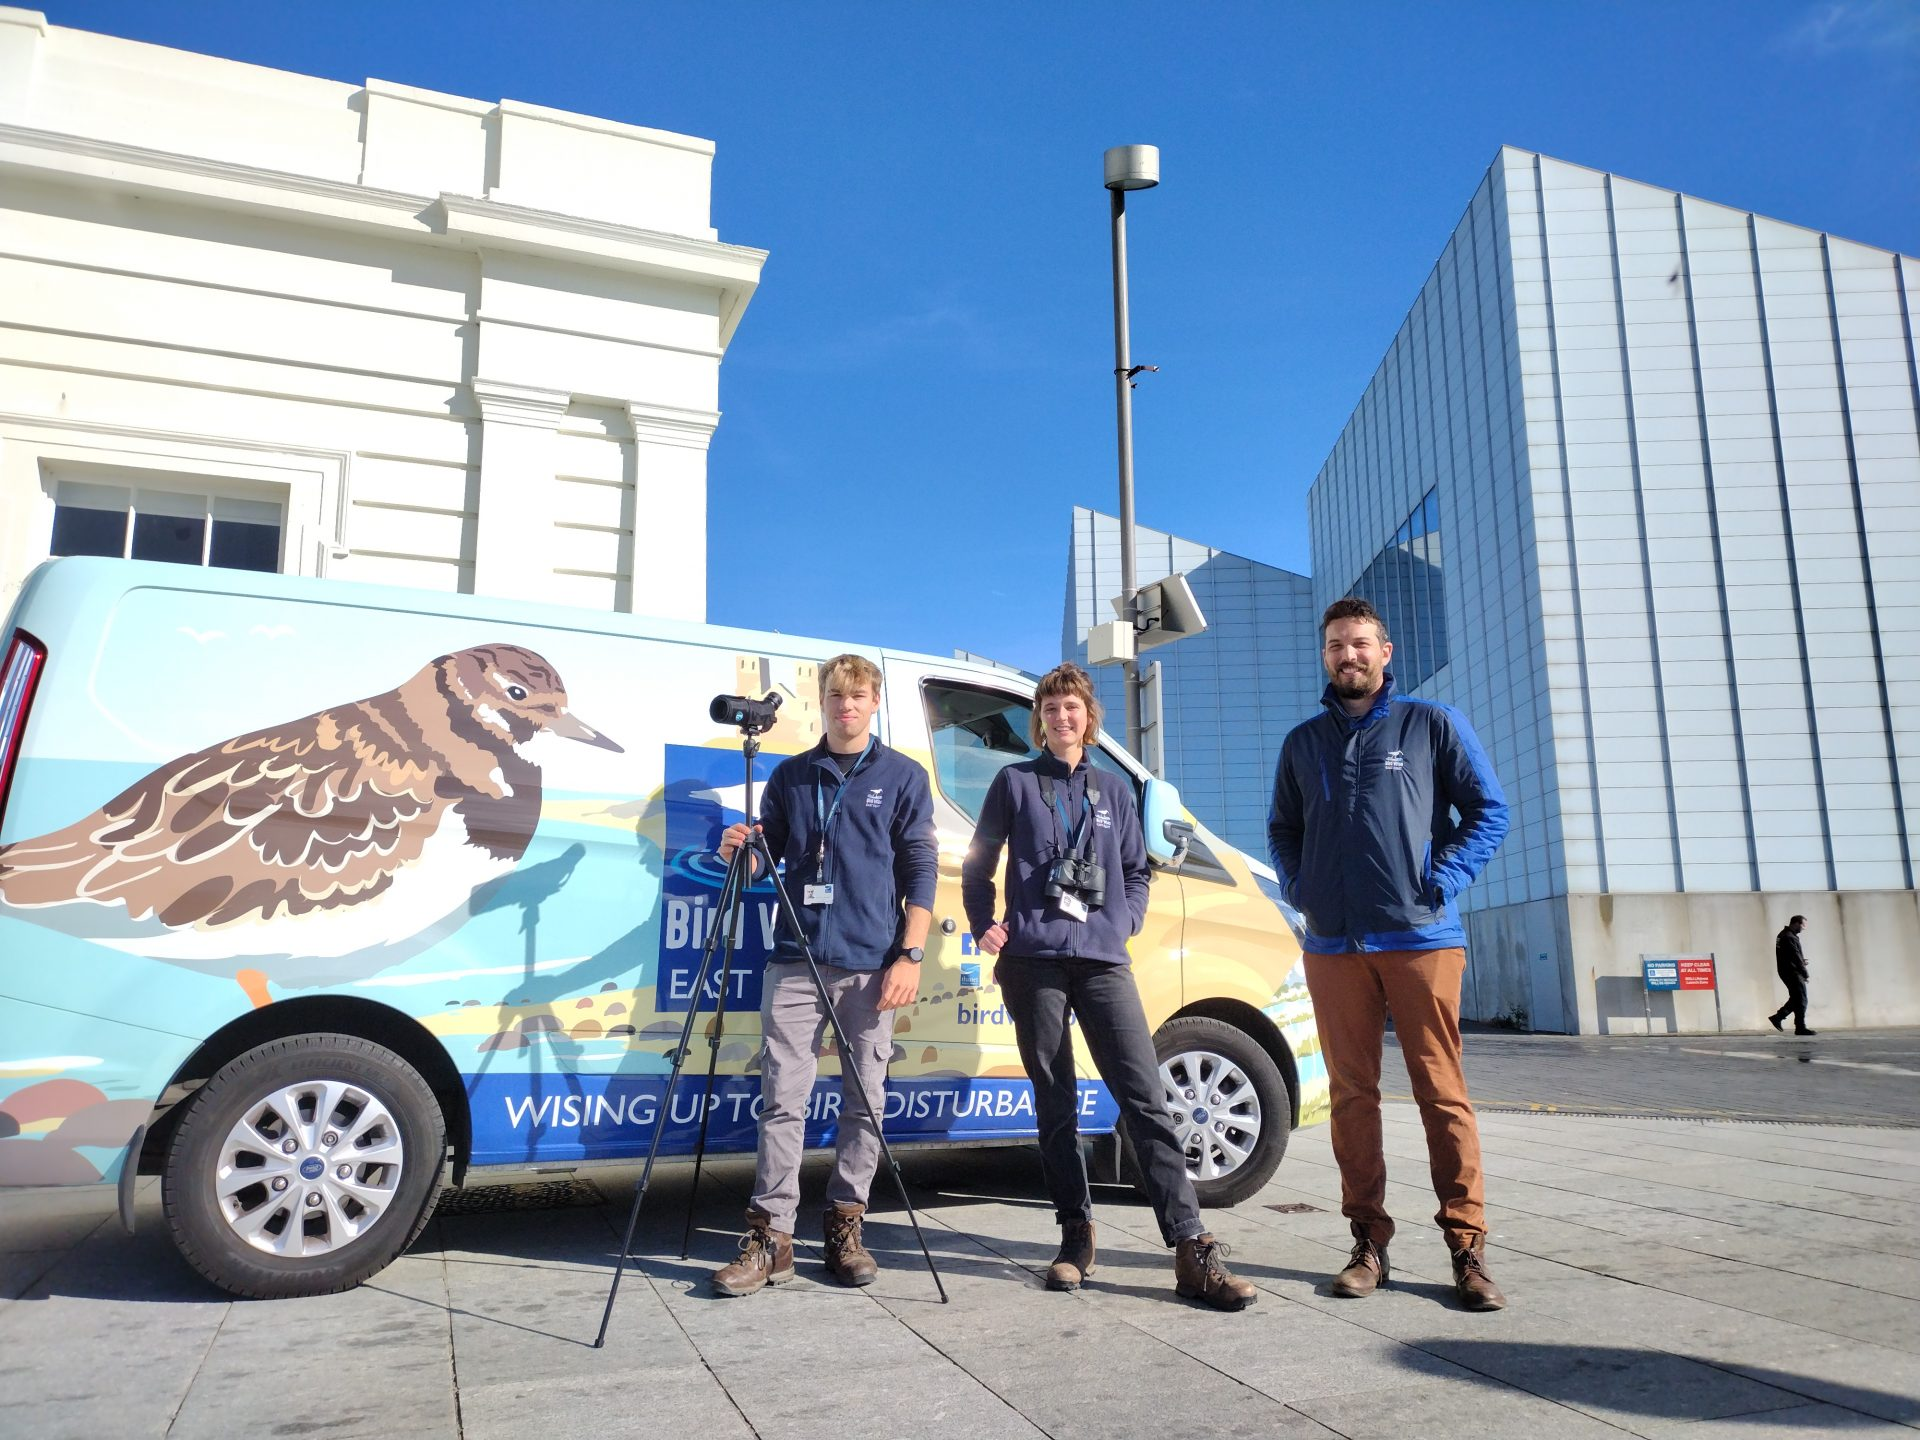 Colourful birdwise transit van sits in front of bright blue sky. Three people standing in front smiling.